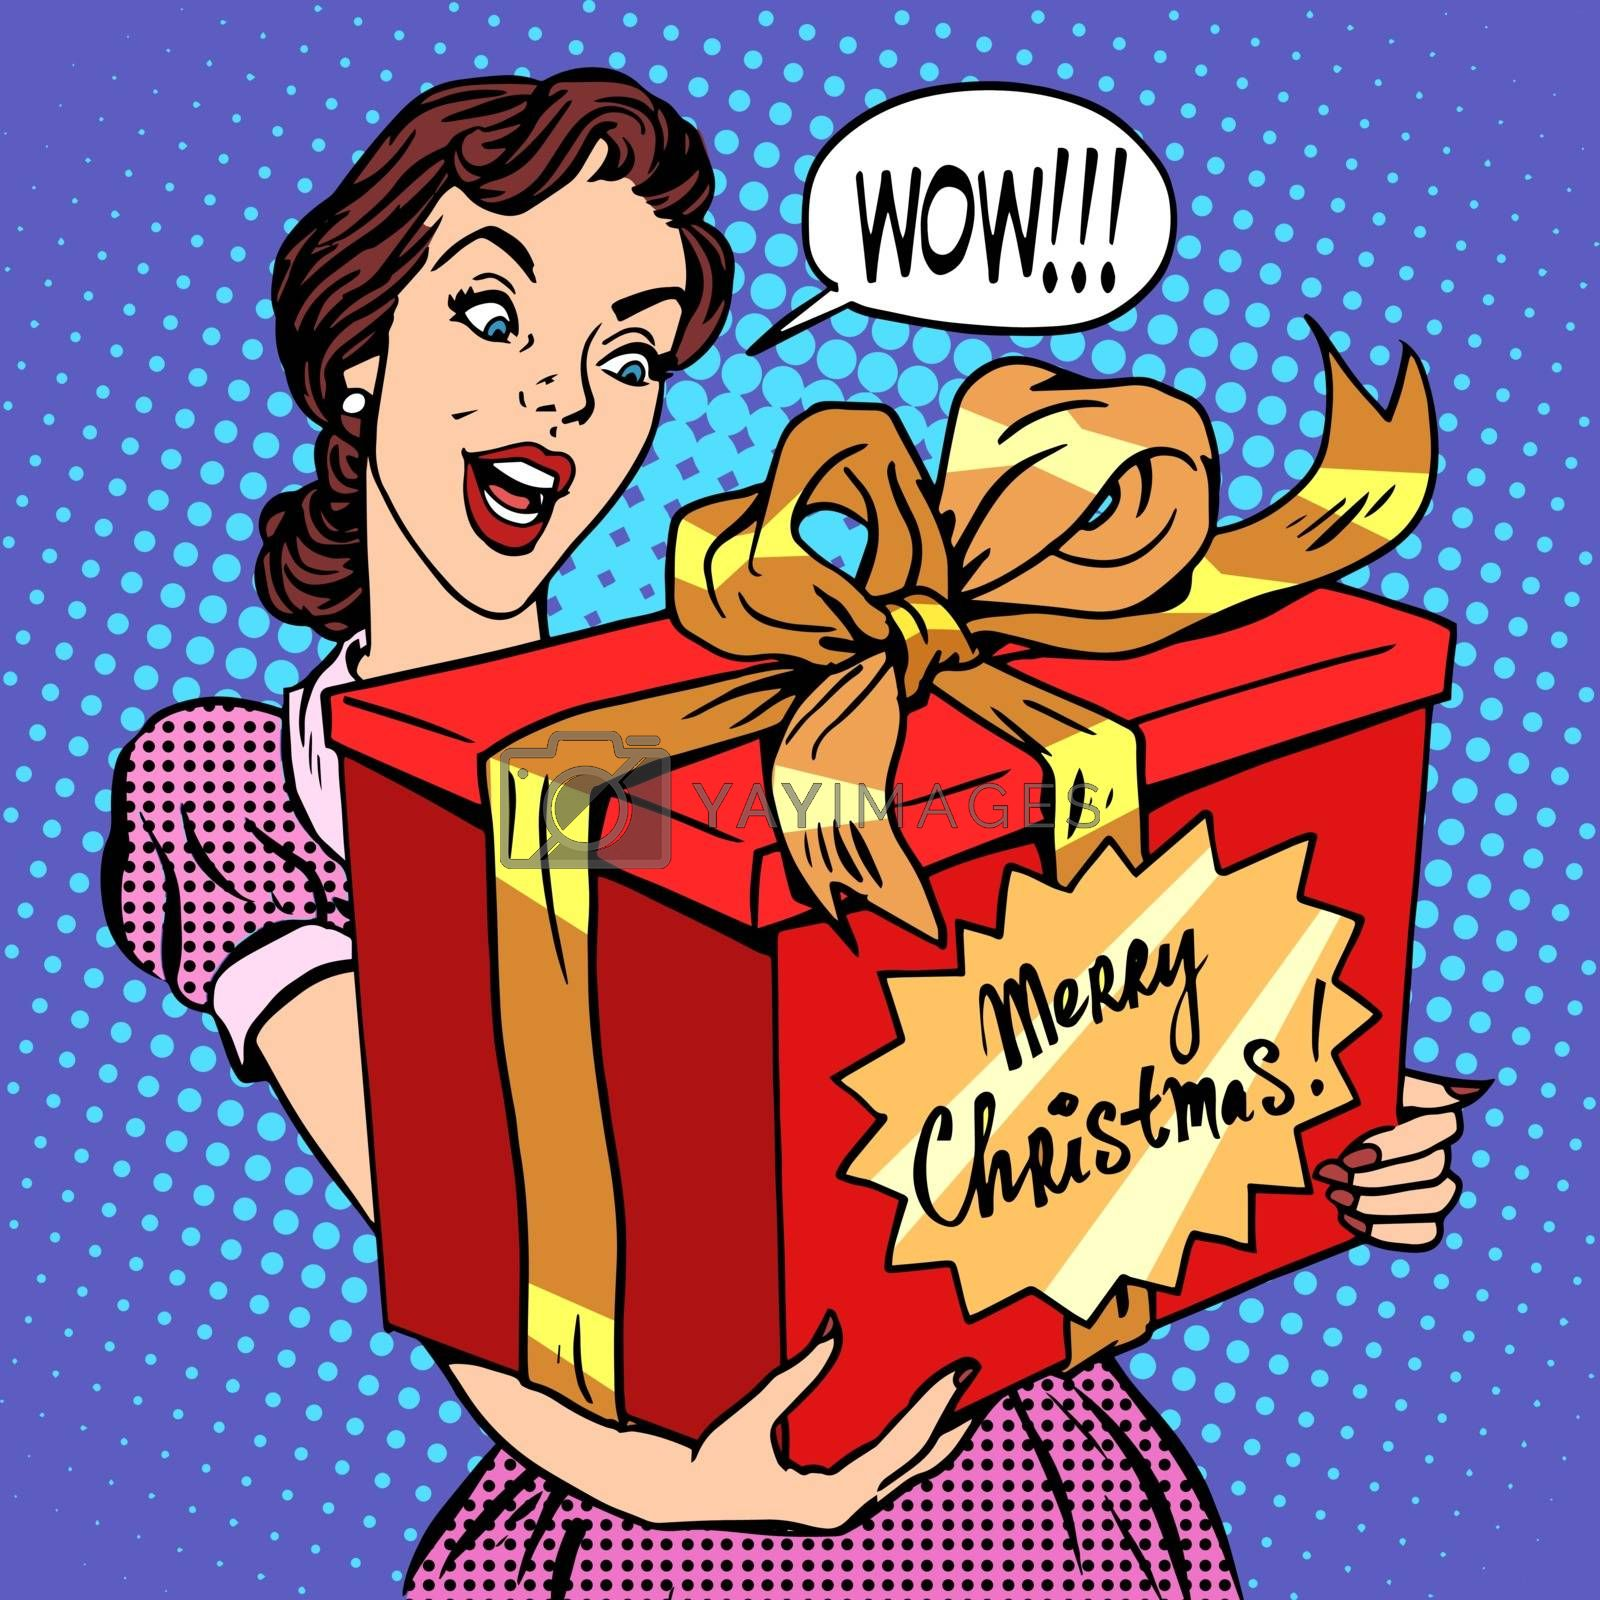 Woman with Christmas gift pop art retro style. Beautiful girl with a big red box with the words merry Christmas. Celebrations and congratulations. Family and joy